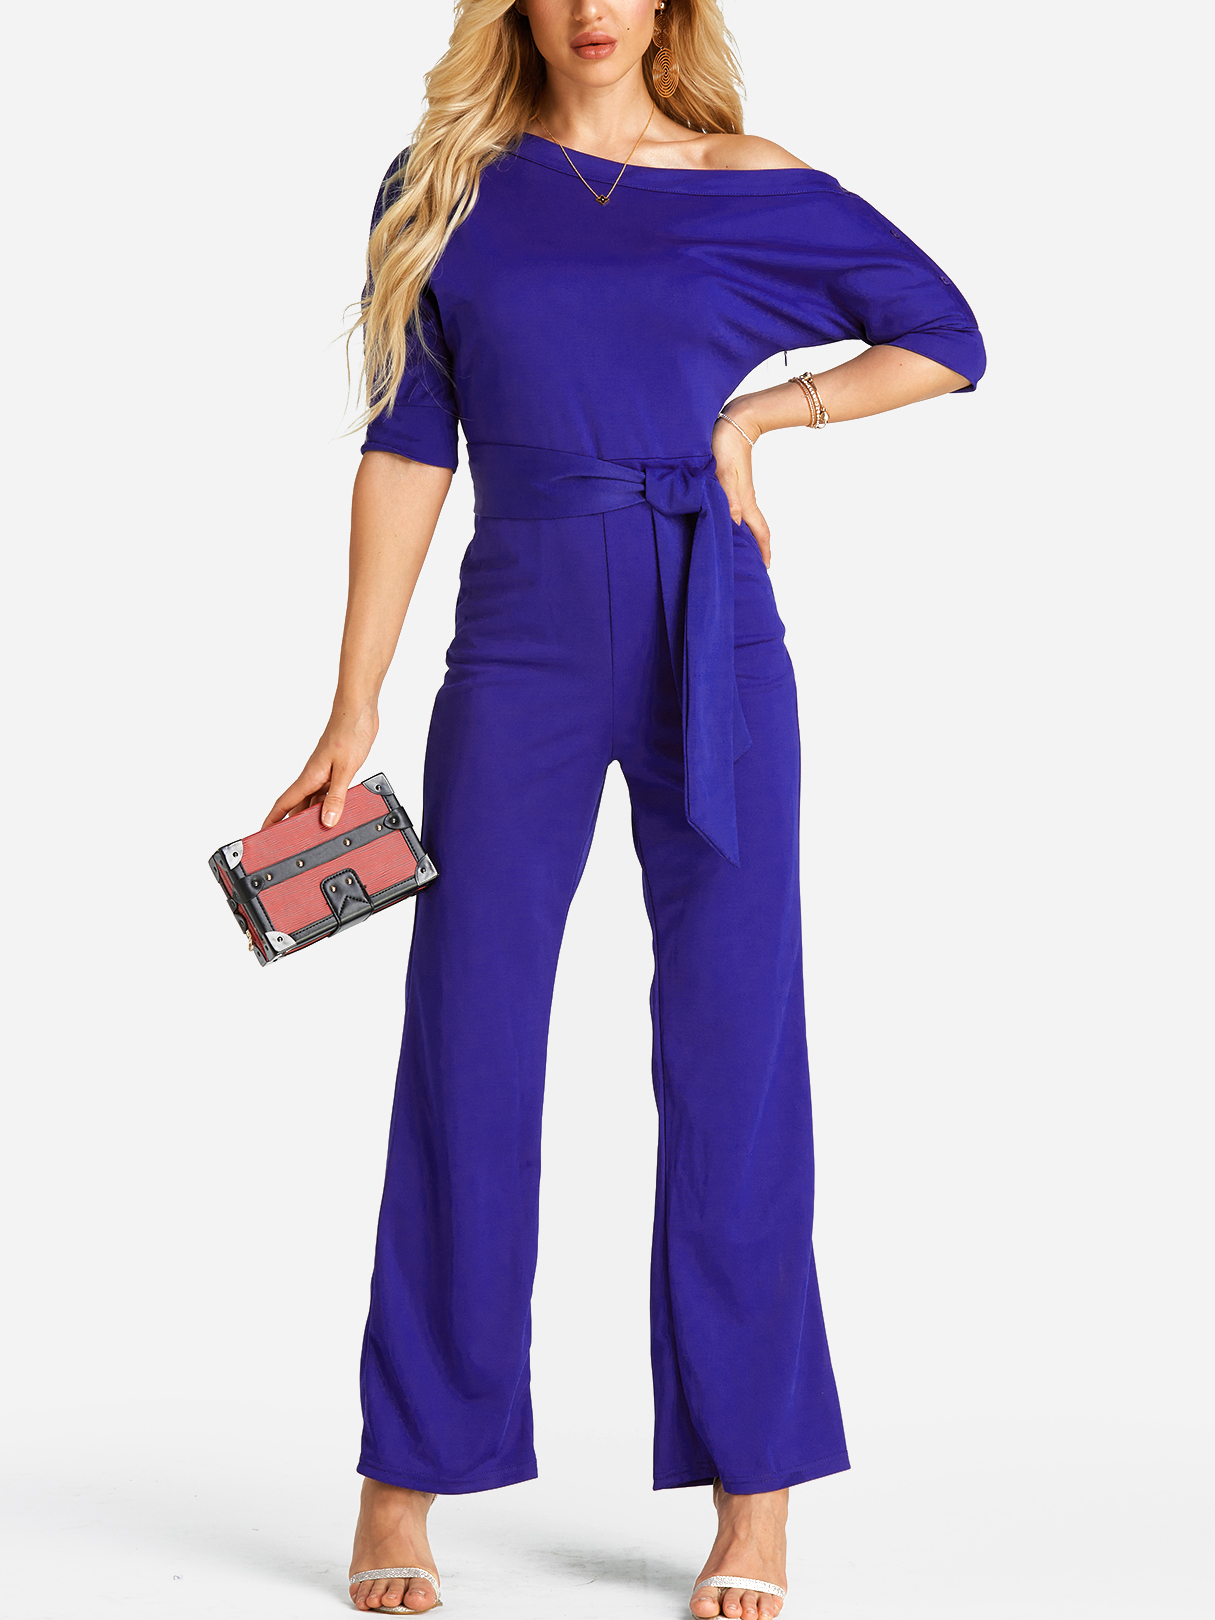 Blue Self-tie Design One Shoulder Jumpsuit burgundy one shoulder frill layered design jumpsuit